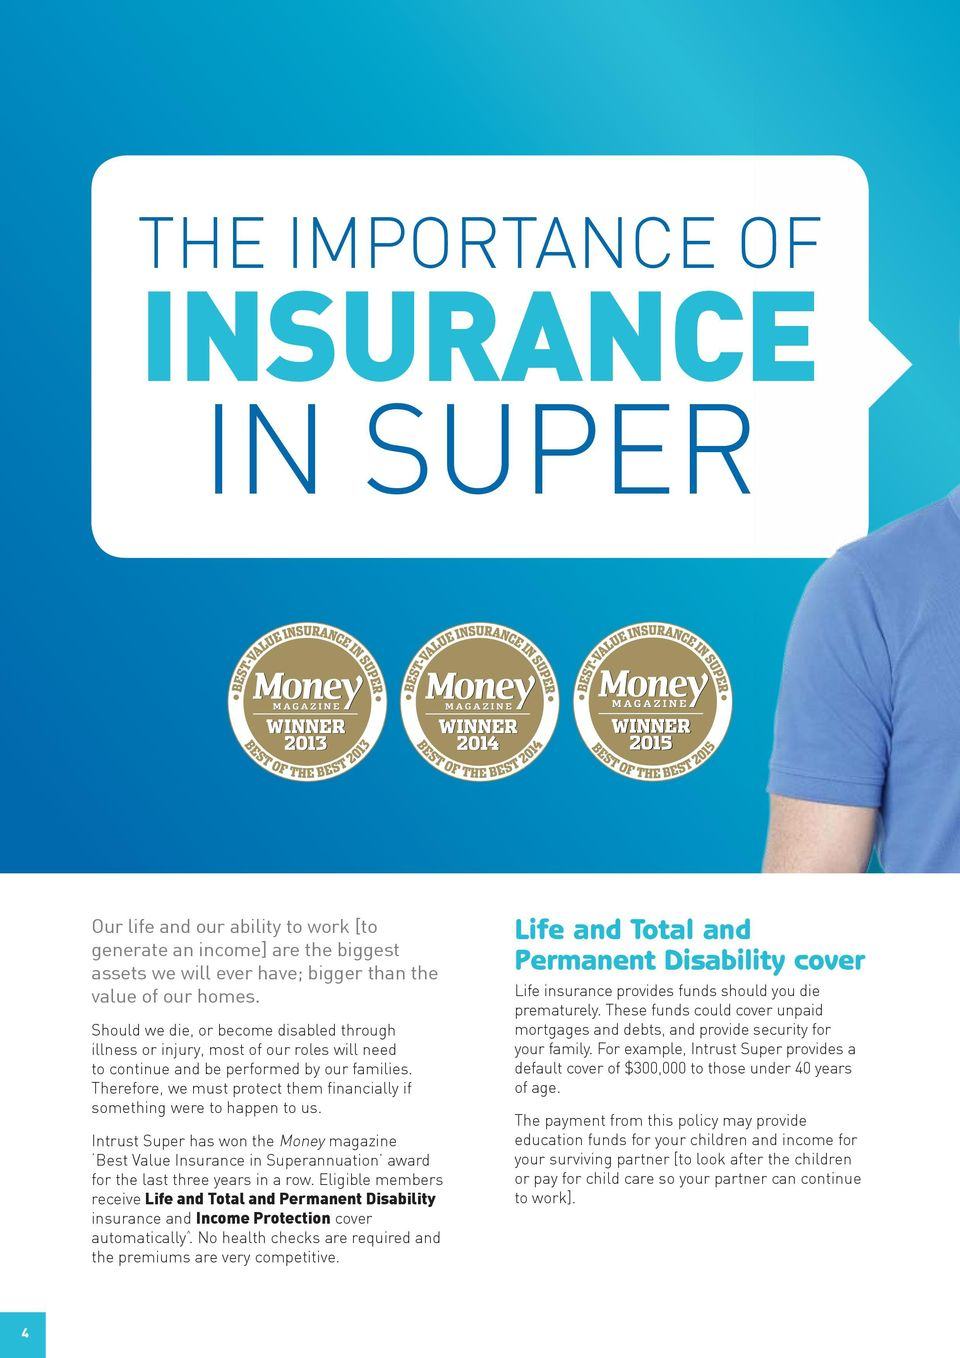 Therefore, we must protect them financially if something were to happen to us. Intrust Super has won the Money magazine Best Value Insurance in Superannuation award for the last three years in a row.